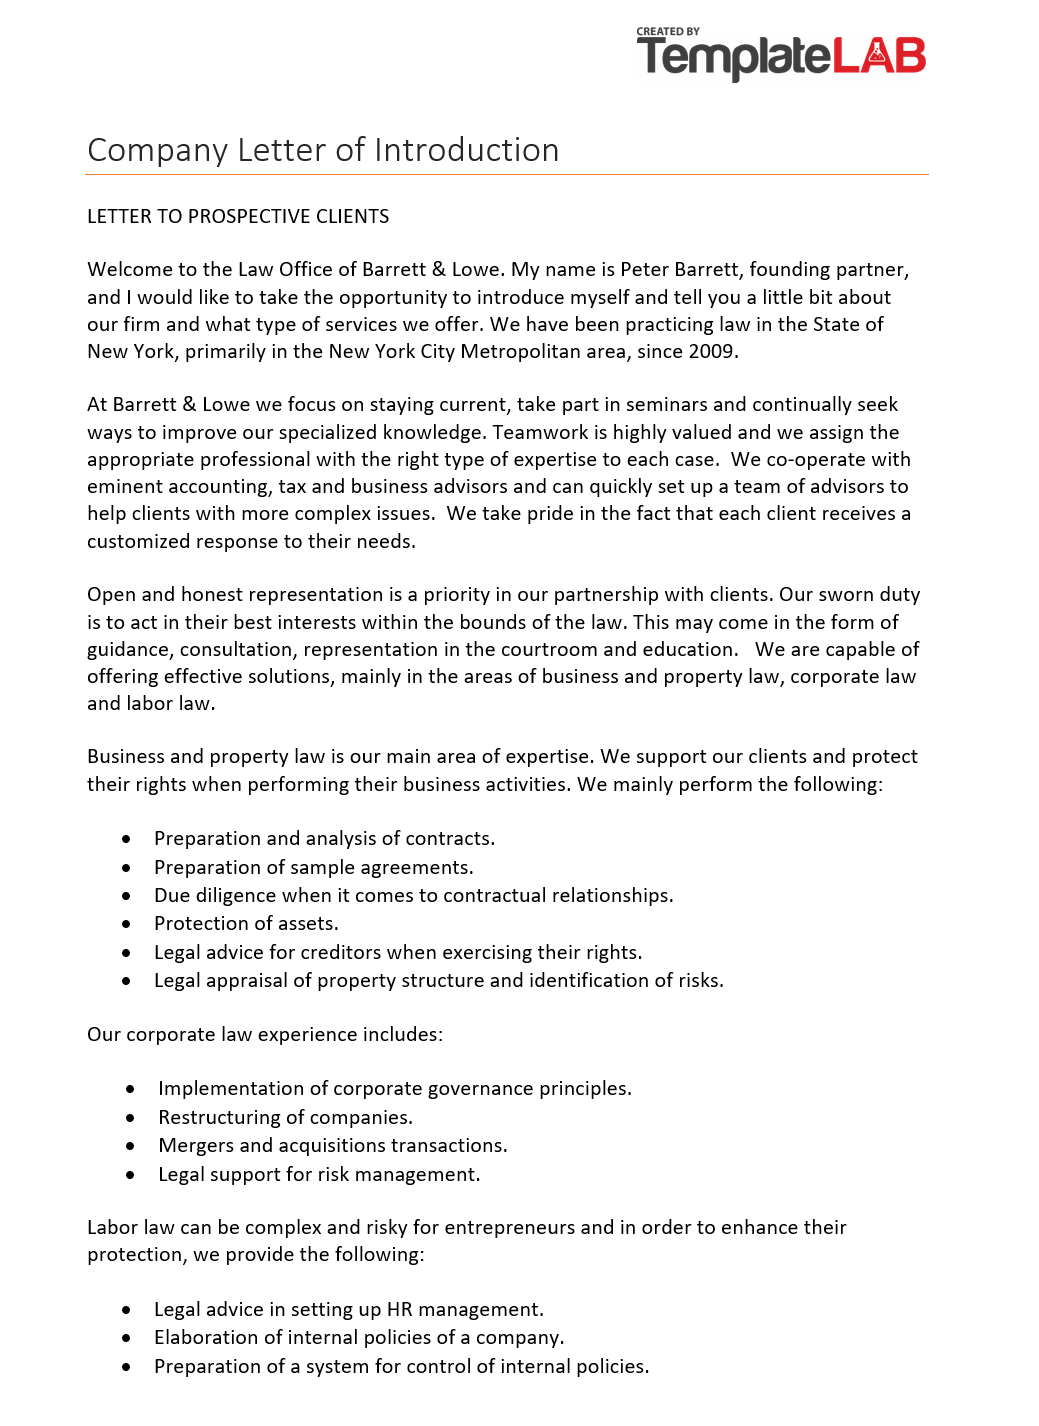 Free Company Letter of Introduction 2